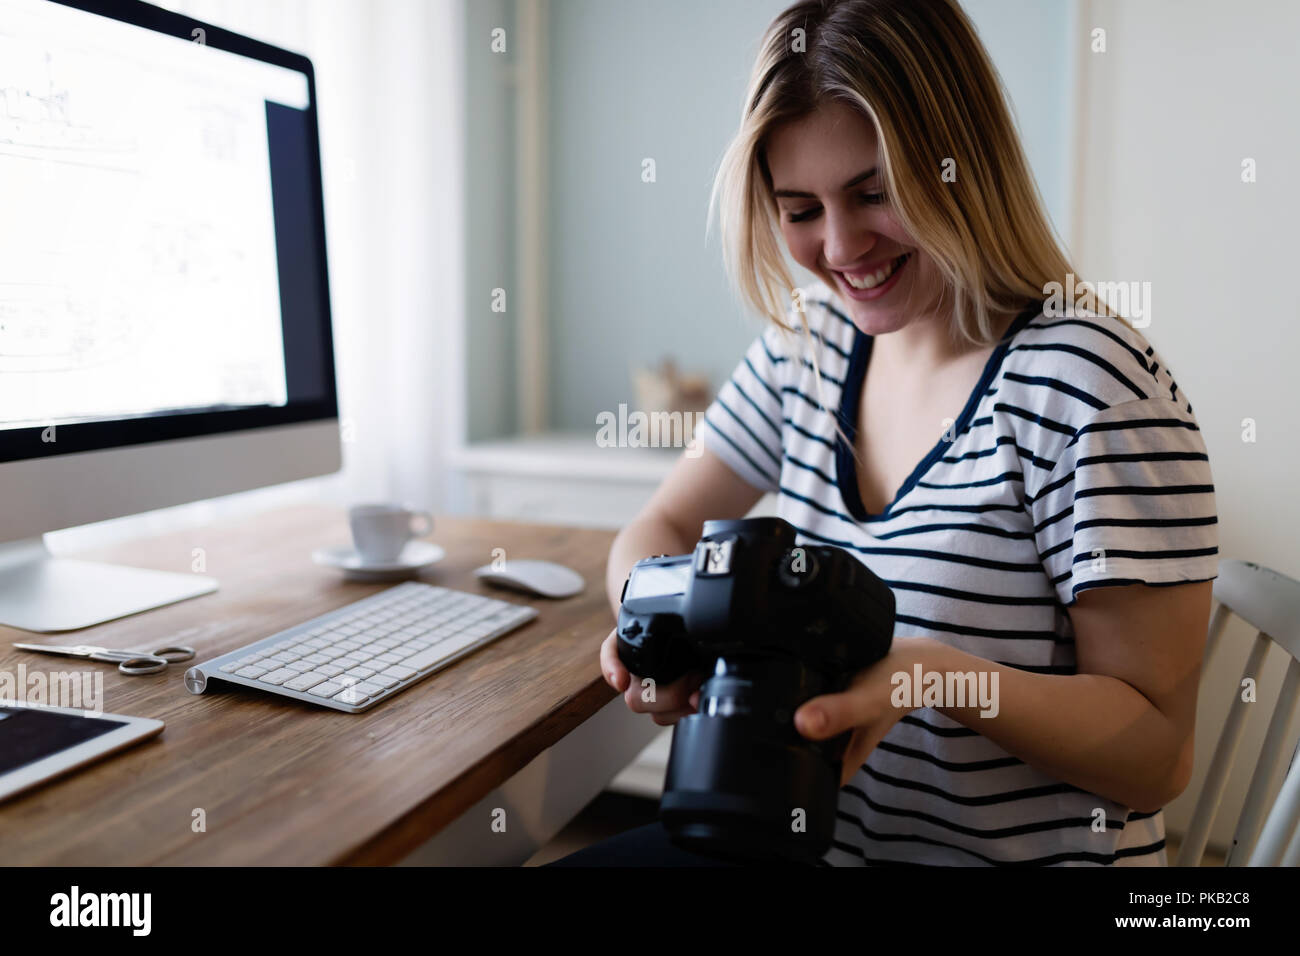 Portrait of young woman designing at home - Stock Image